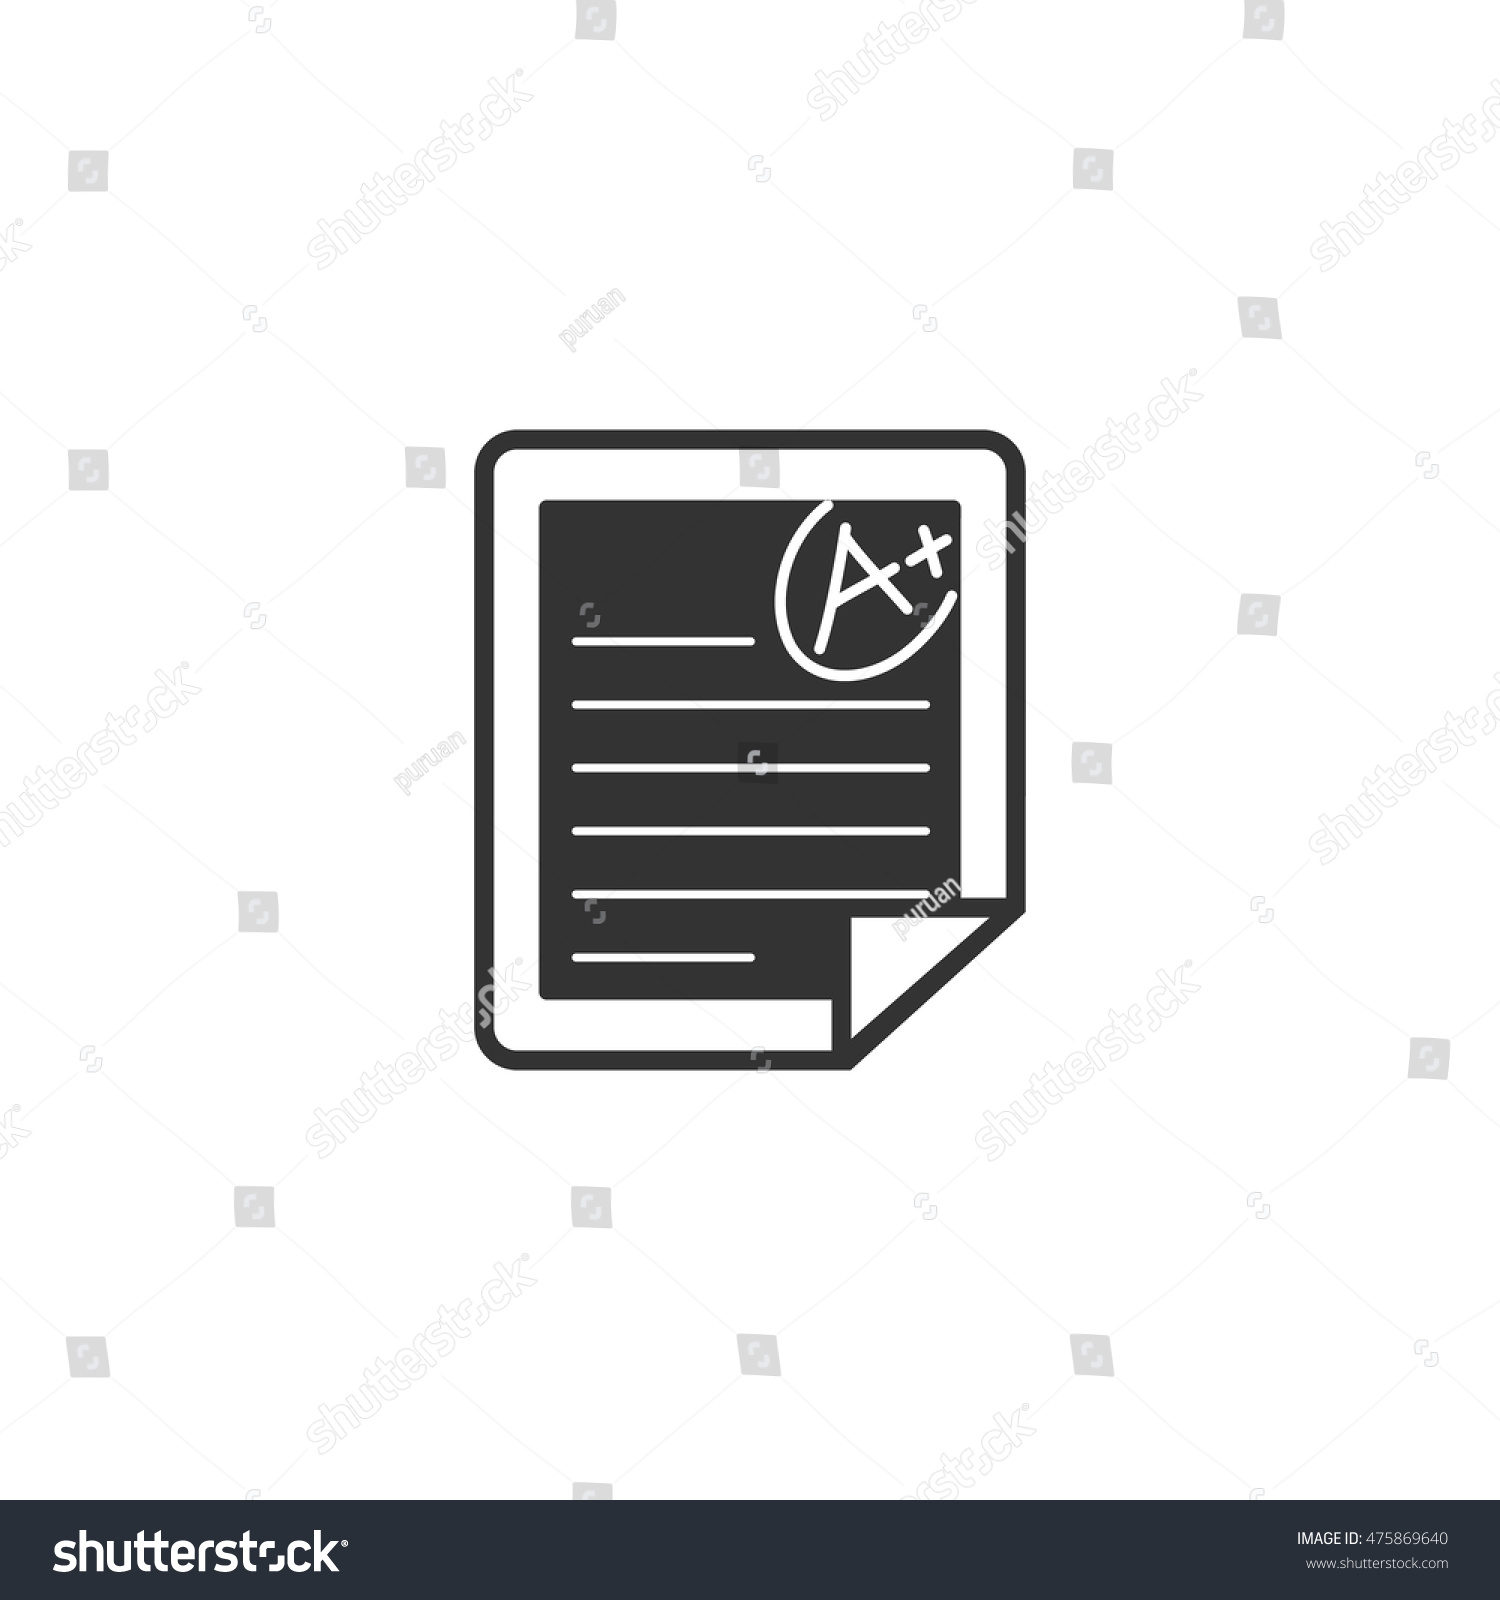 exam result icon single color education stock vector  exam result icon in single color education school student essay paper